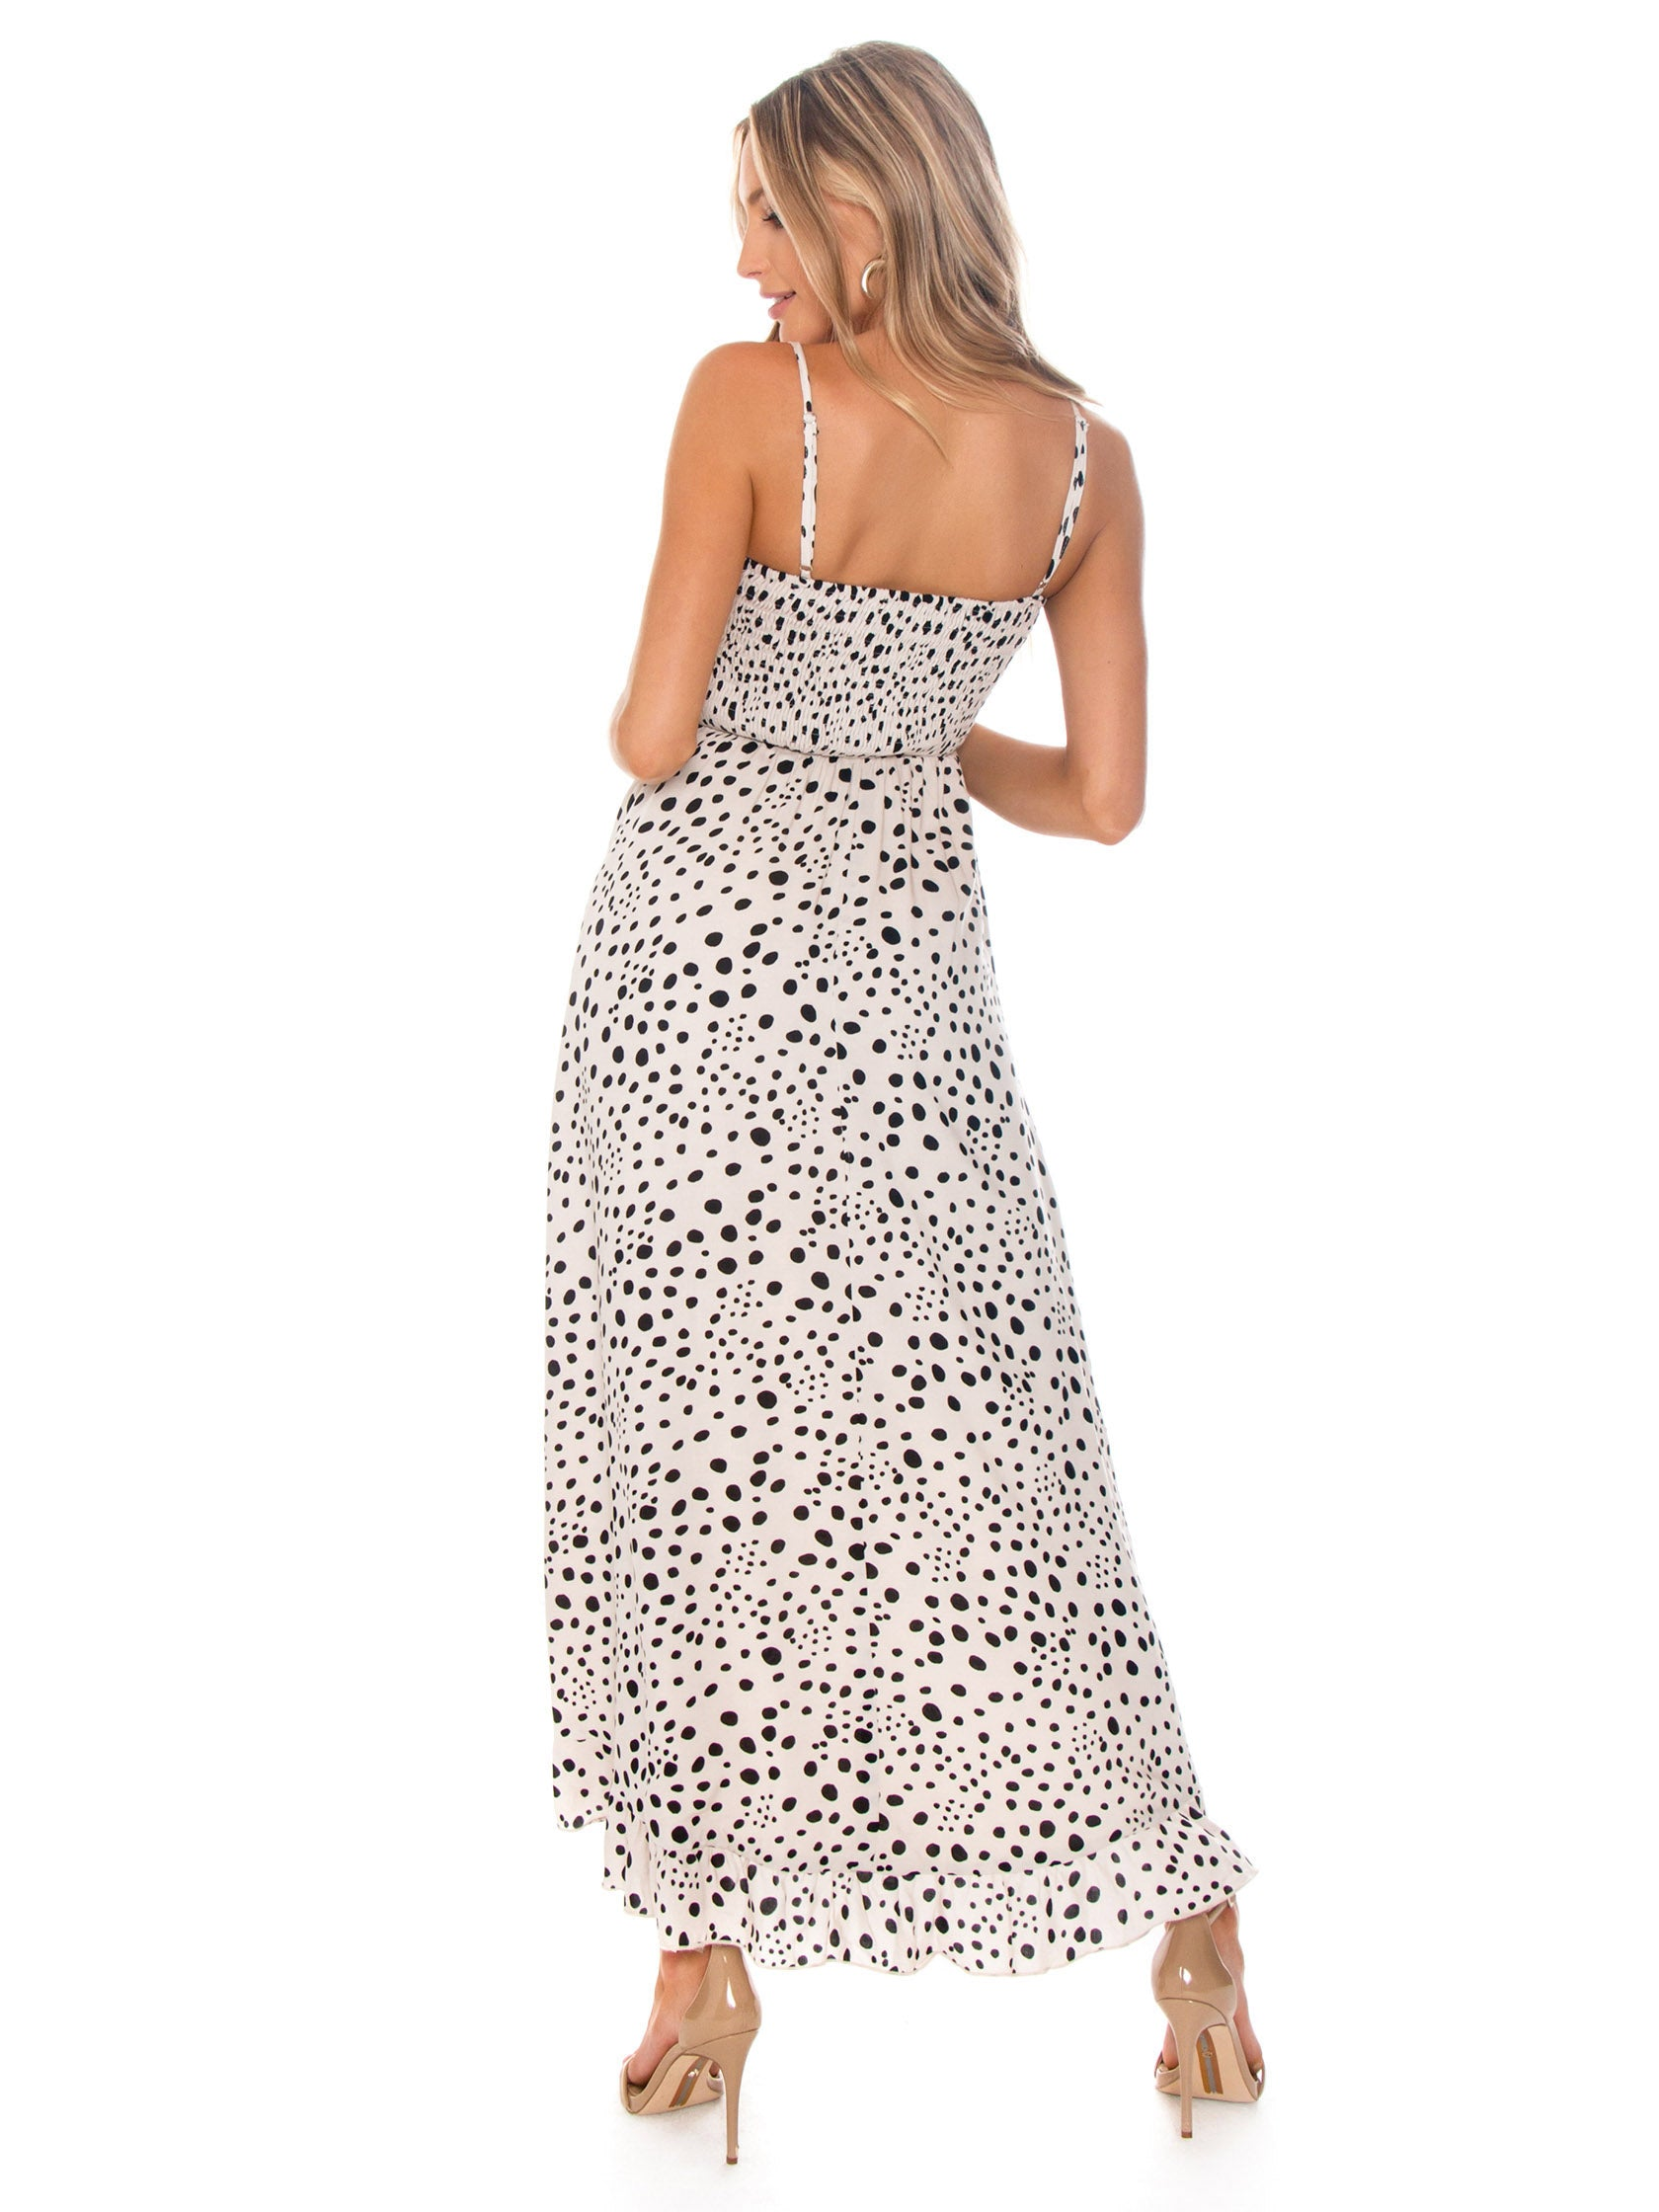 Women outfit in a dress rental from Lost In Lunar called Allira Maxi Dress